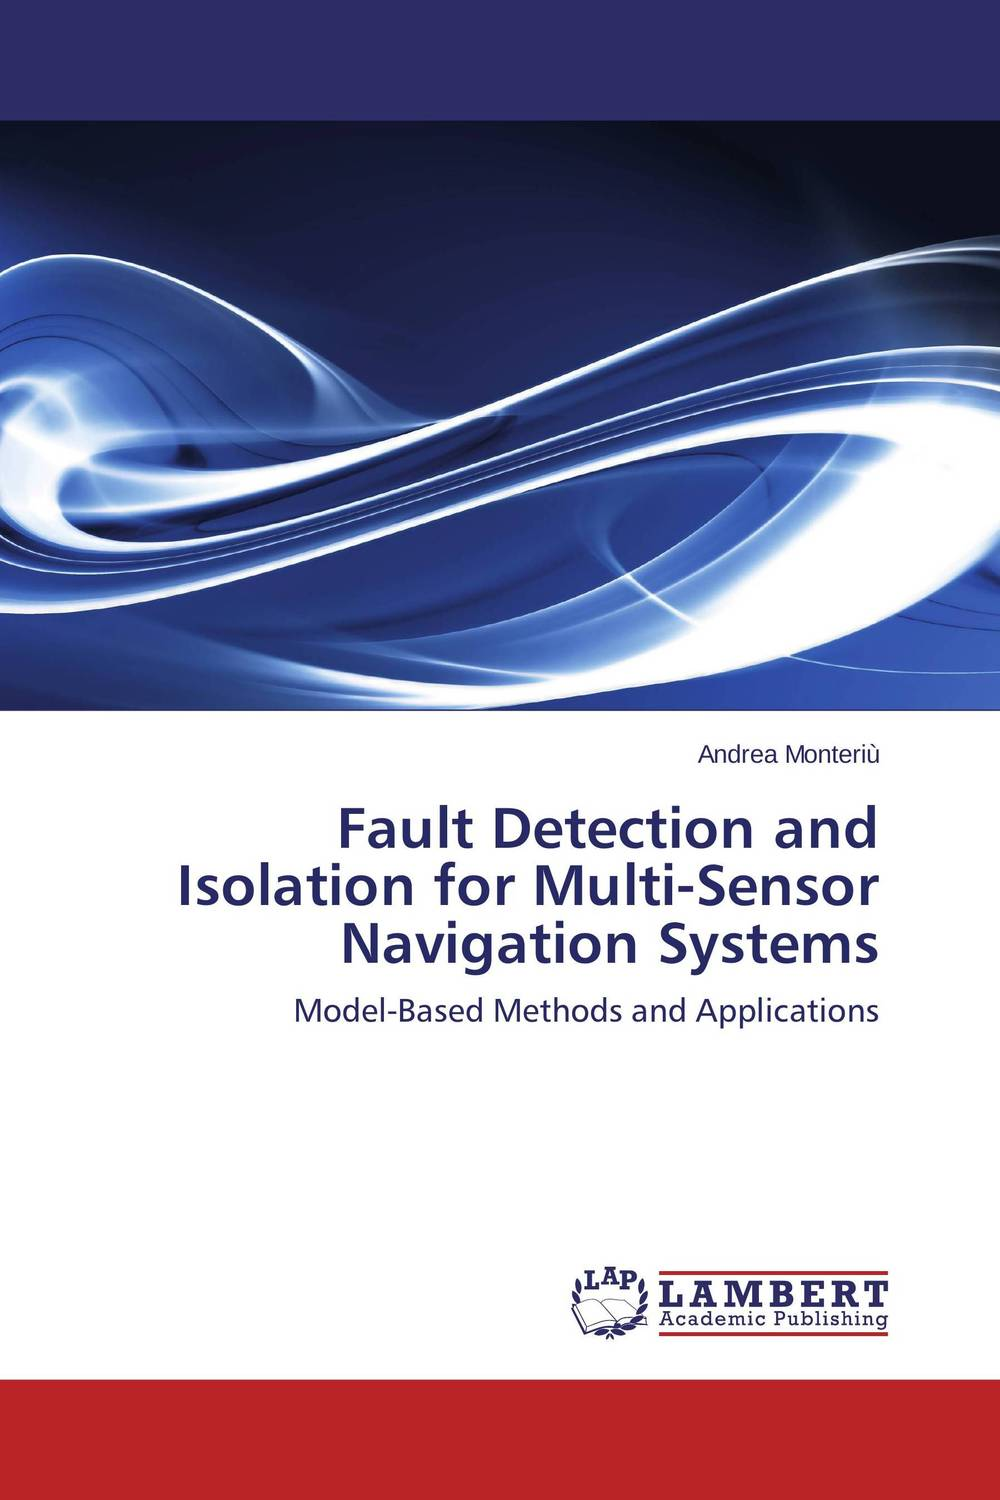 Fault Detection and Isolation for Multi-Sensor Navigation Systems mpso and mga approaches for mobile robot navigation